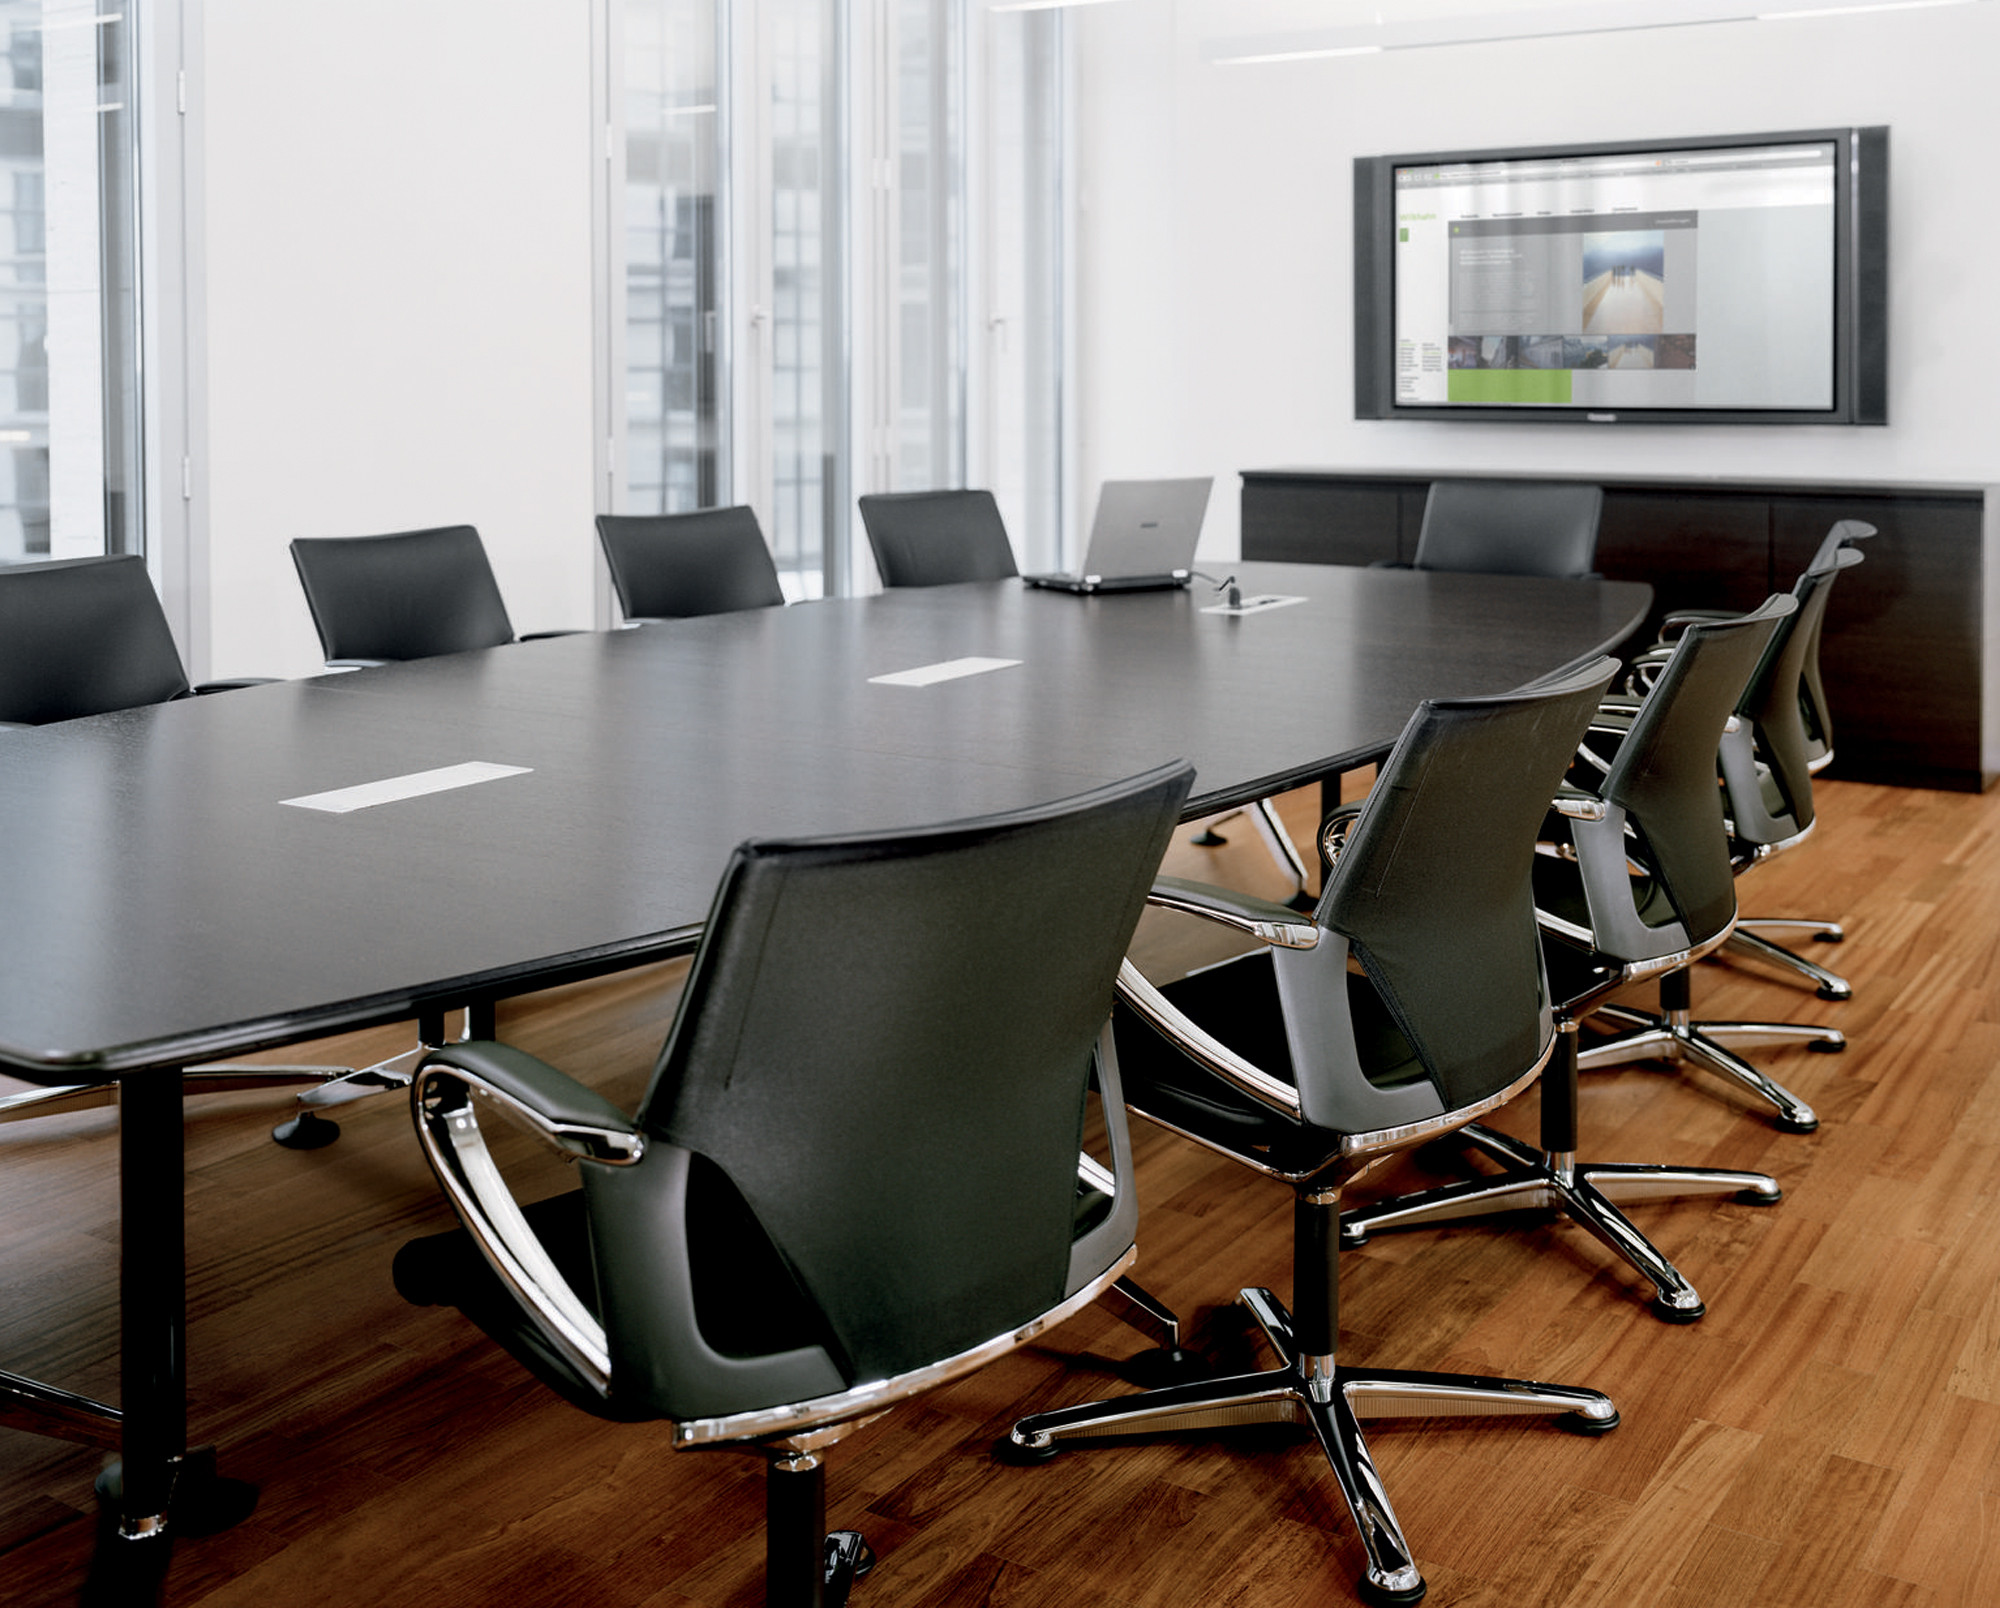 Modus Meeting Room Chairs by Wilkhahn